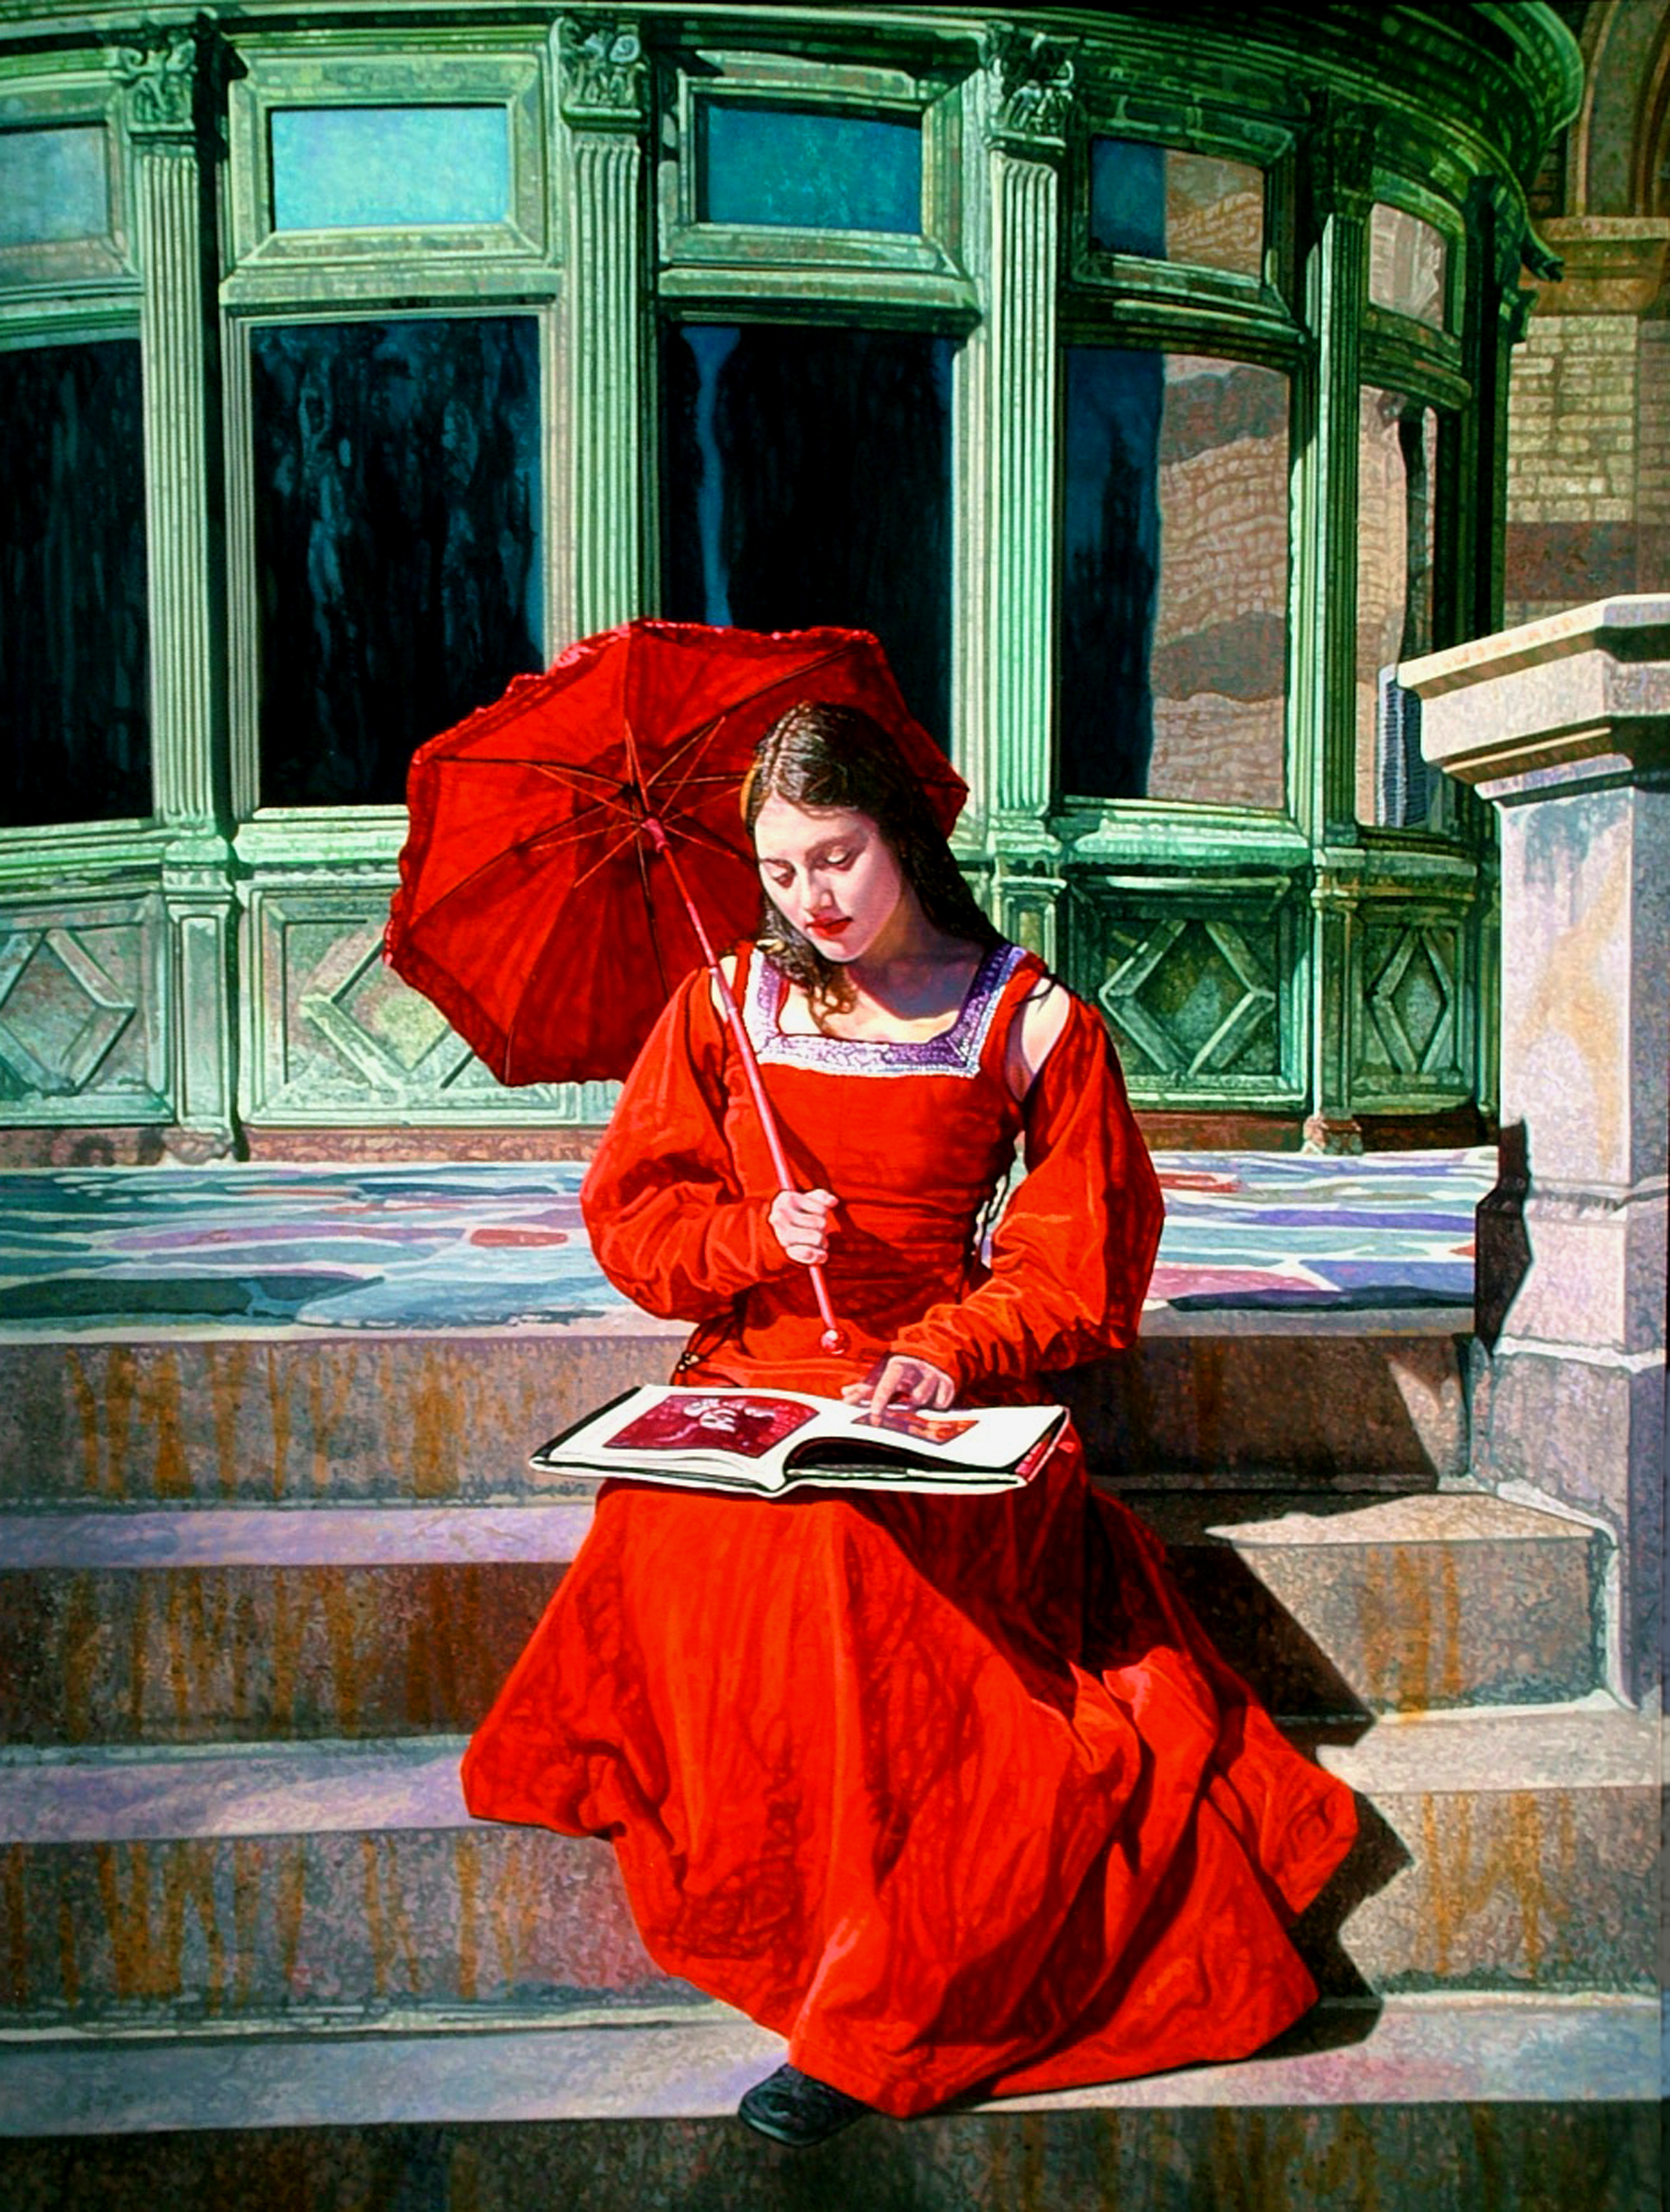 "Red #1 , 2008, Oil on Canvas, 40"" x 30"".  A young woman in a bright red outfit sits on an ornate staircase looking at a book."